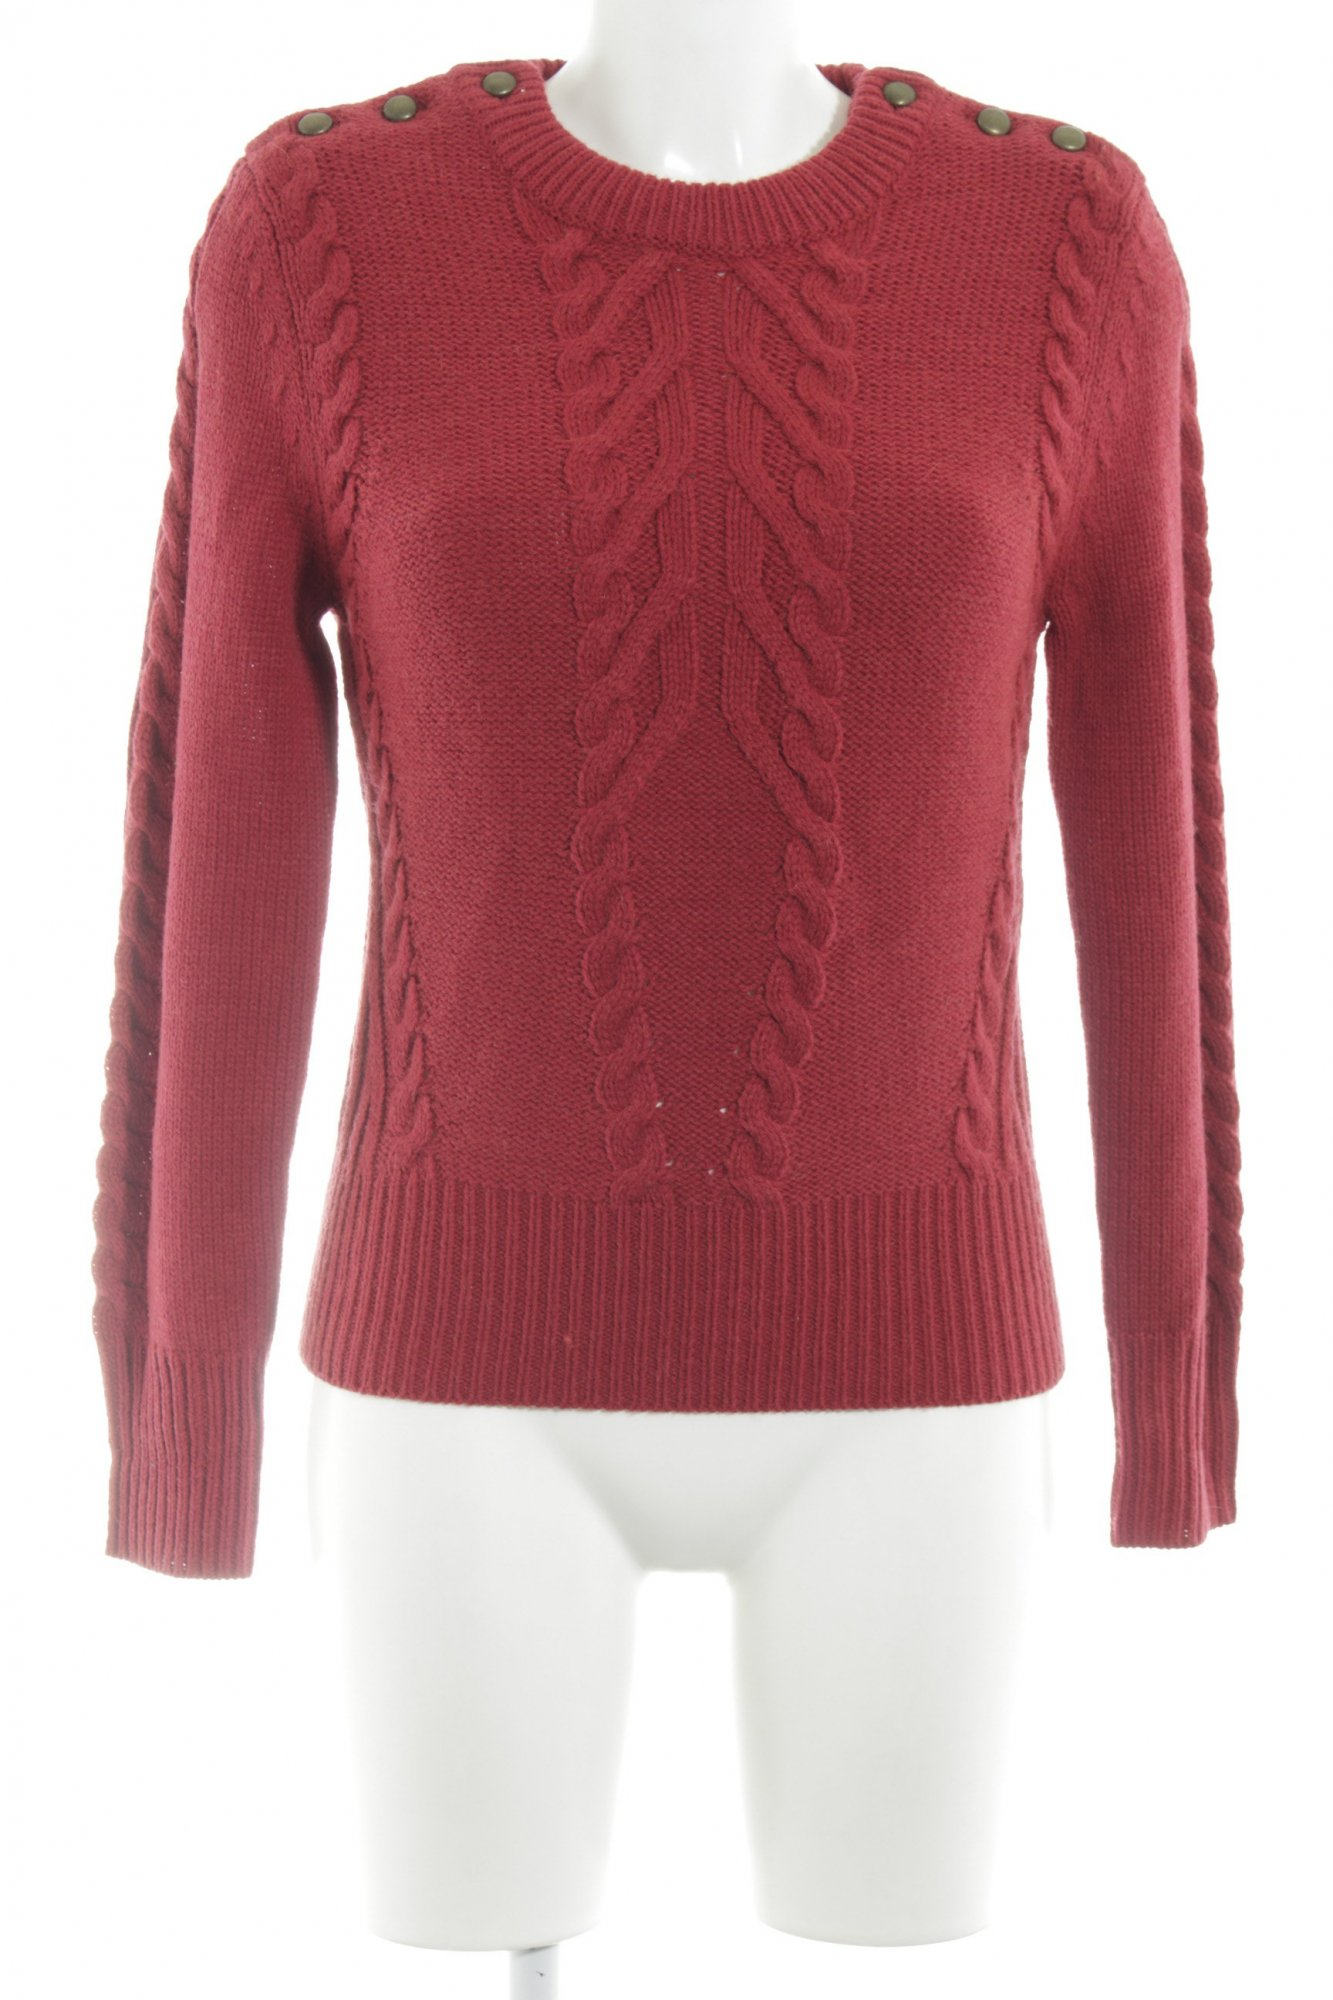 sports shoes 5fa50 66b88 Details zu M&S Strickpullover rot Zopfmuster Casual-Look Damen Gr. DE 36  Pullover Sweater